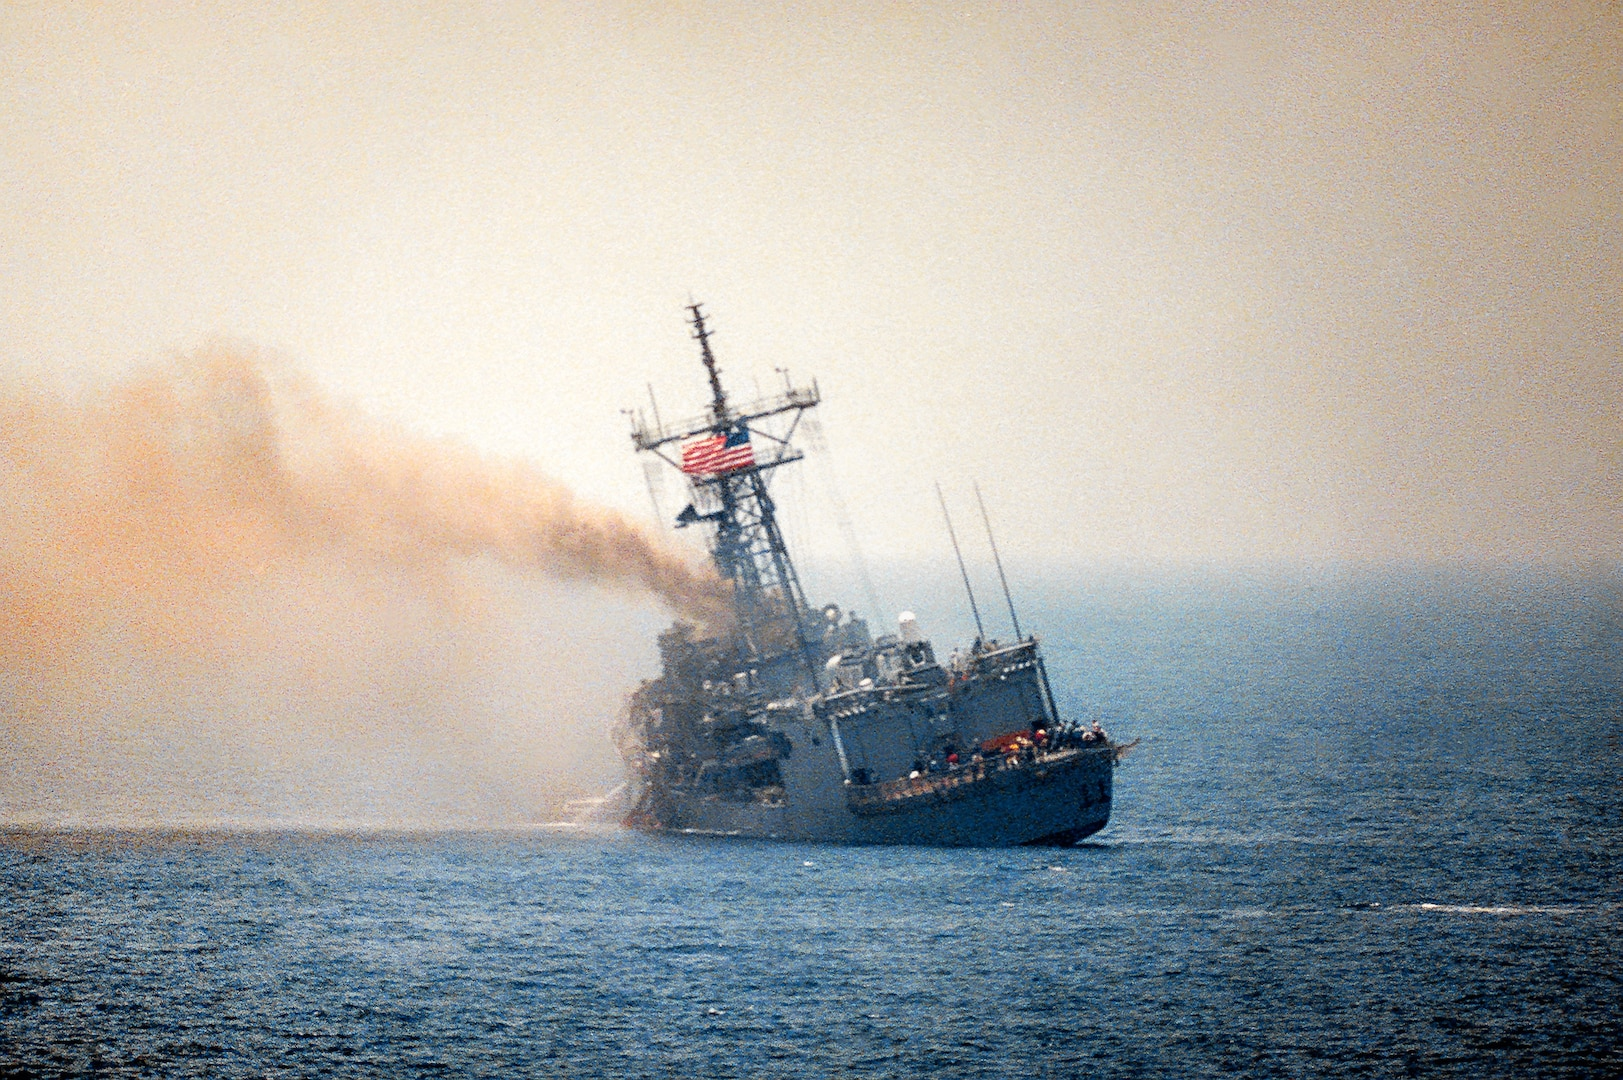 USS Stark listing to port after being struck by two Iraqi-launched Exocet missiles, Persian Gulf, May 17, 1987 (U.S. Navy)